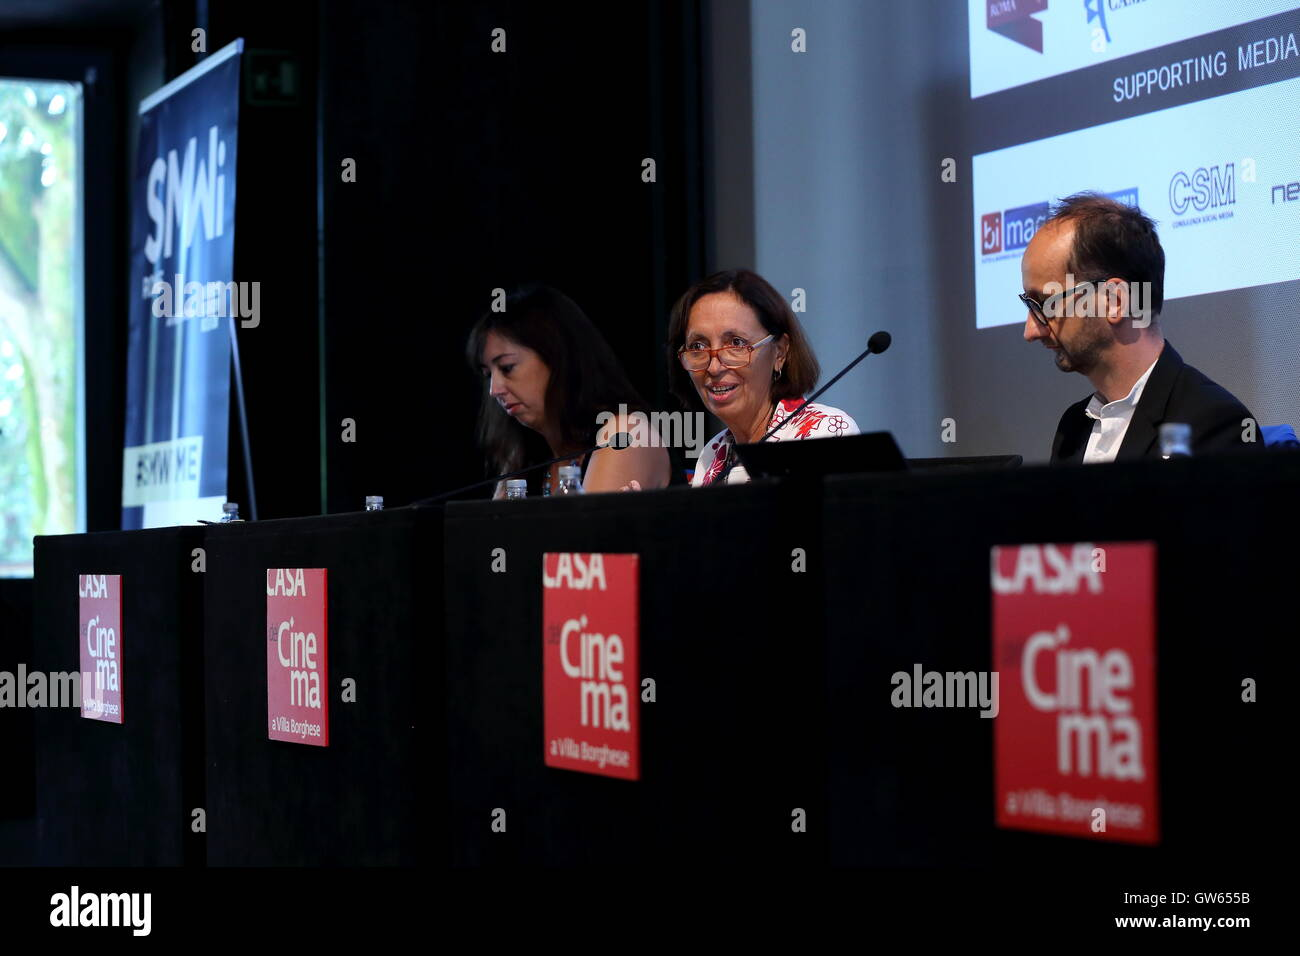 Roma, Italy. 12th Sep, 2016. (C) Flavia Marzano during the Press conference of Social Media Week Rome, which is - Stock Image